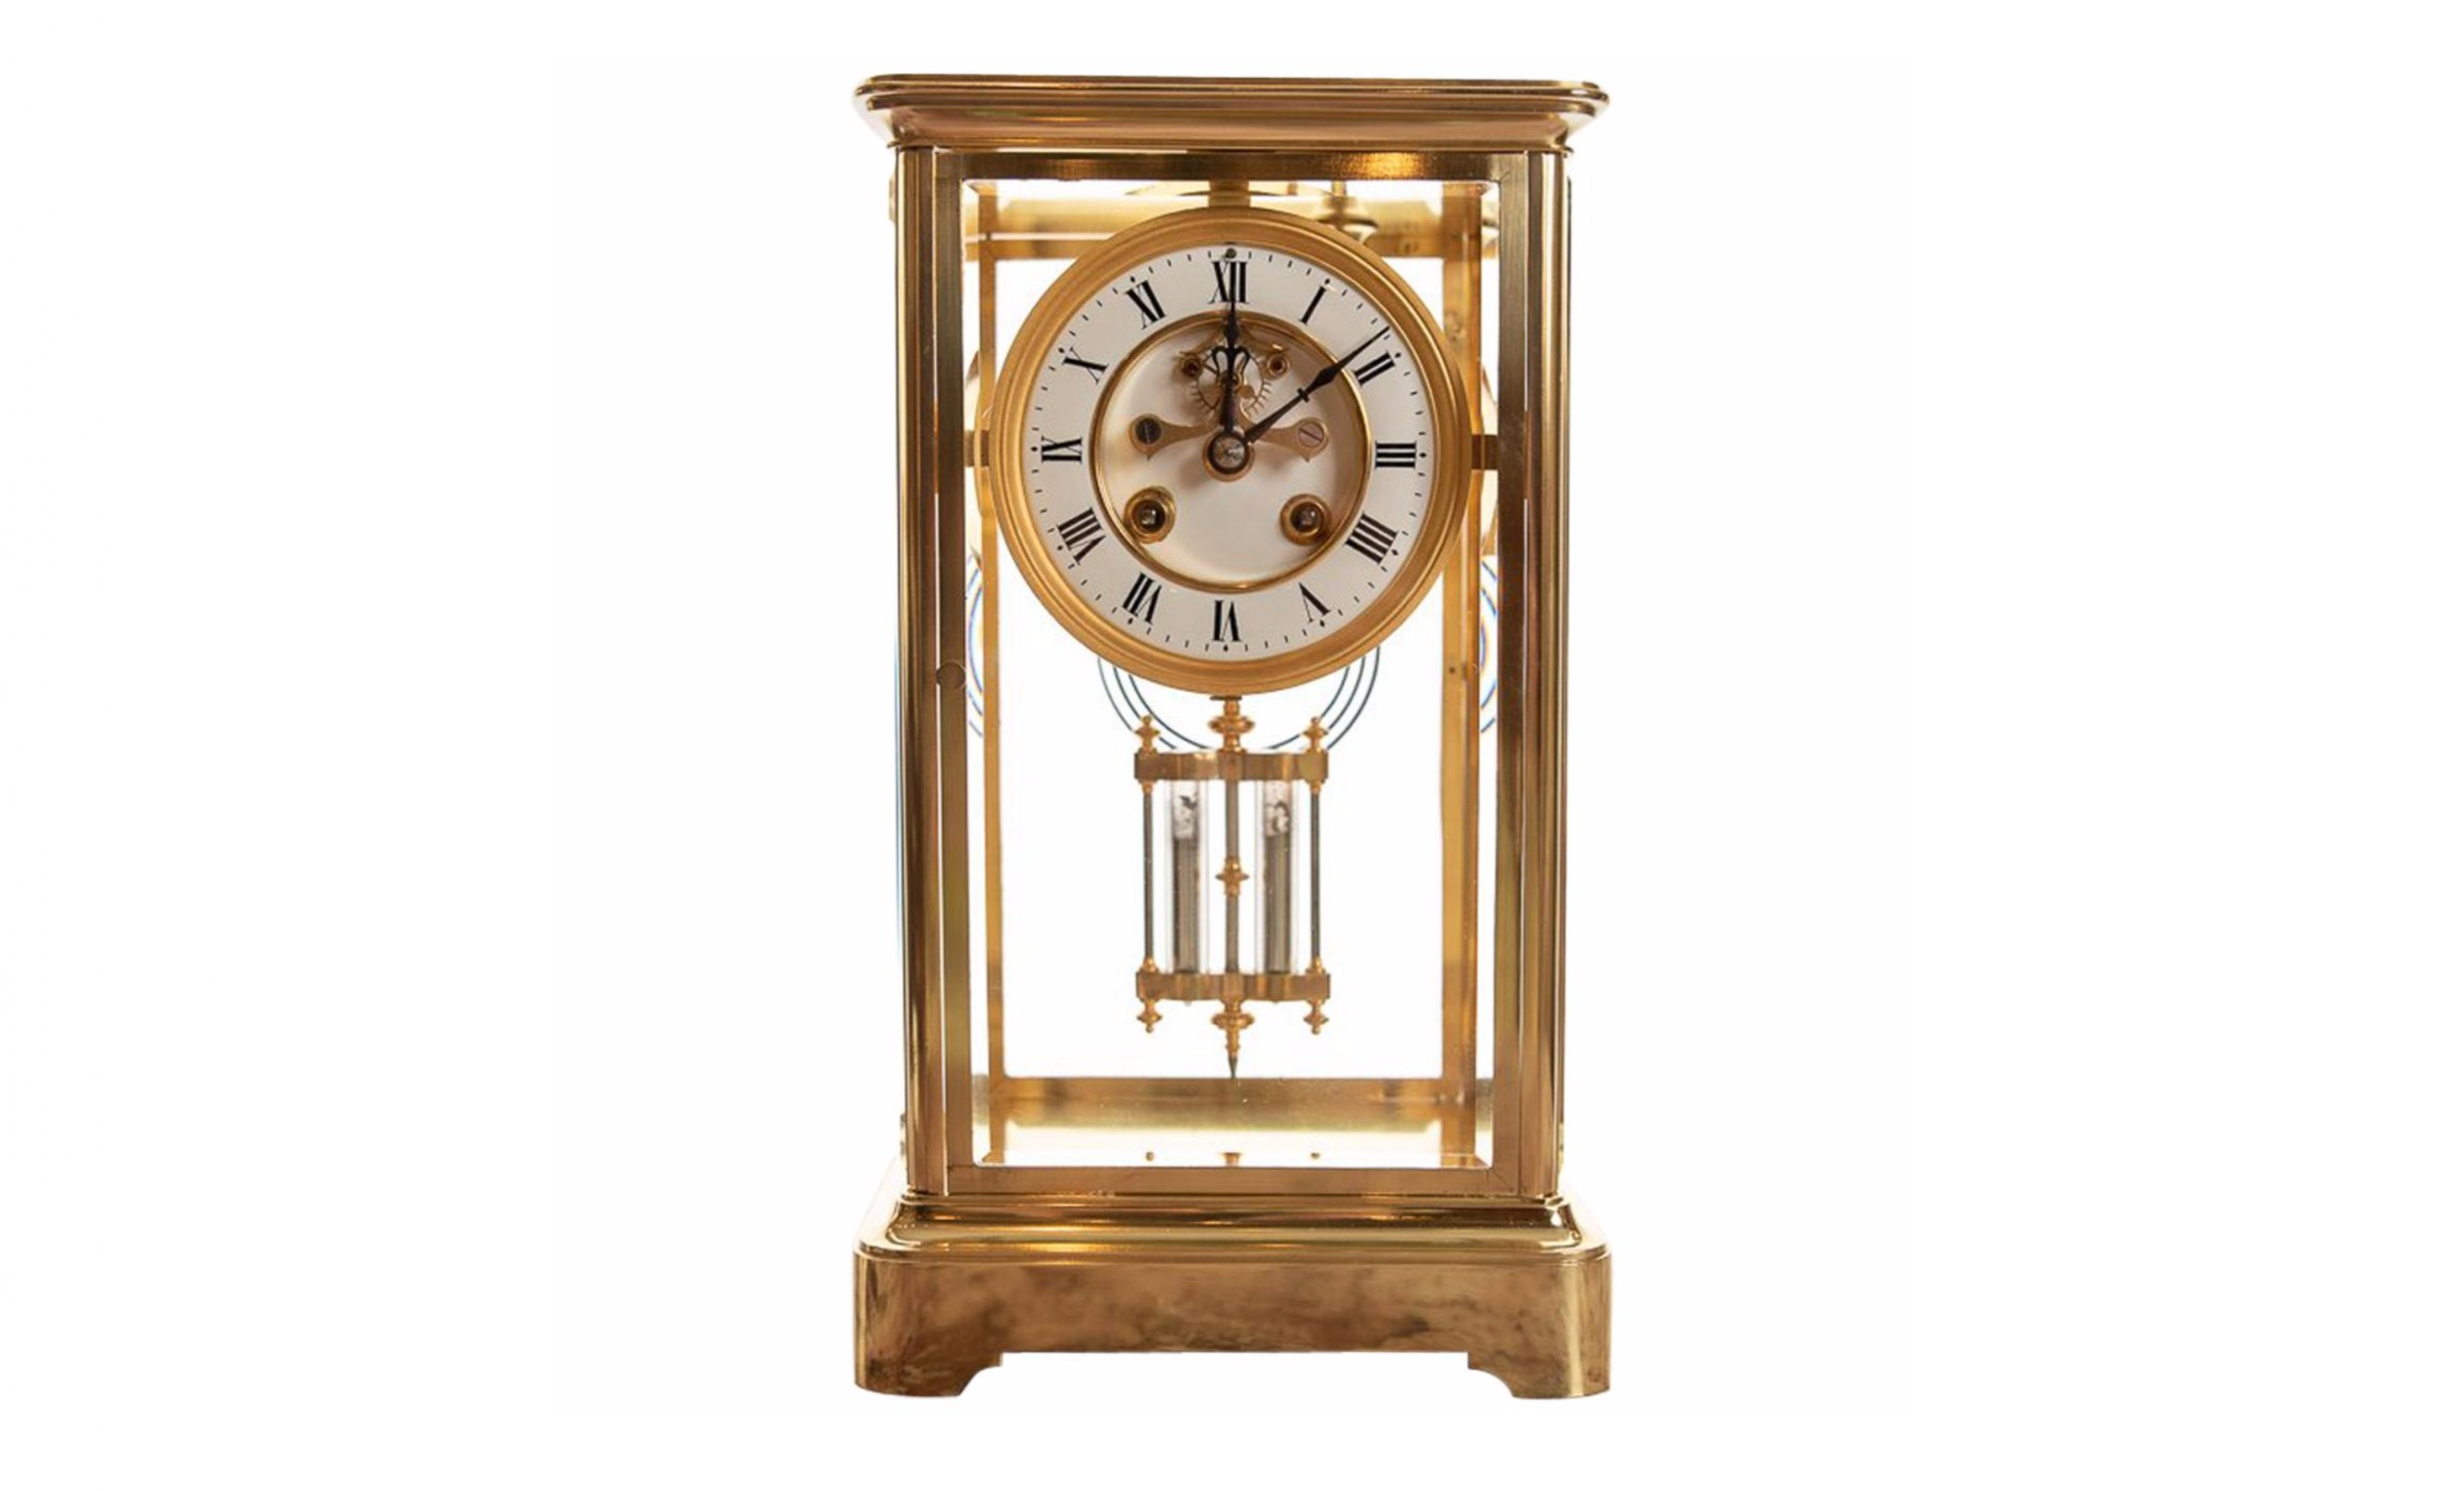 french 8 day striking four glass clock by japy freres paris late 19th century